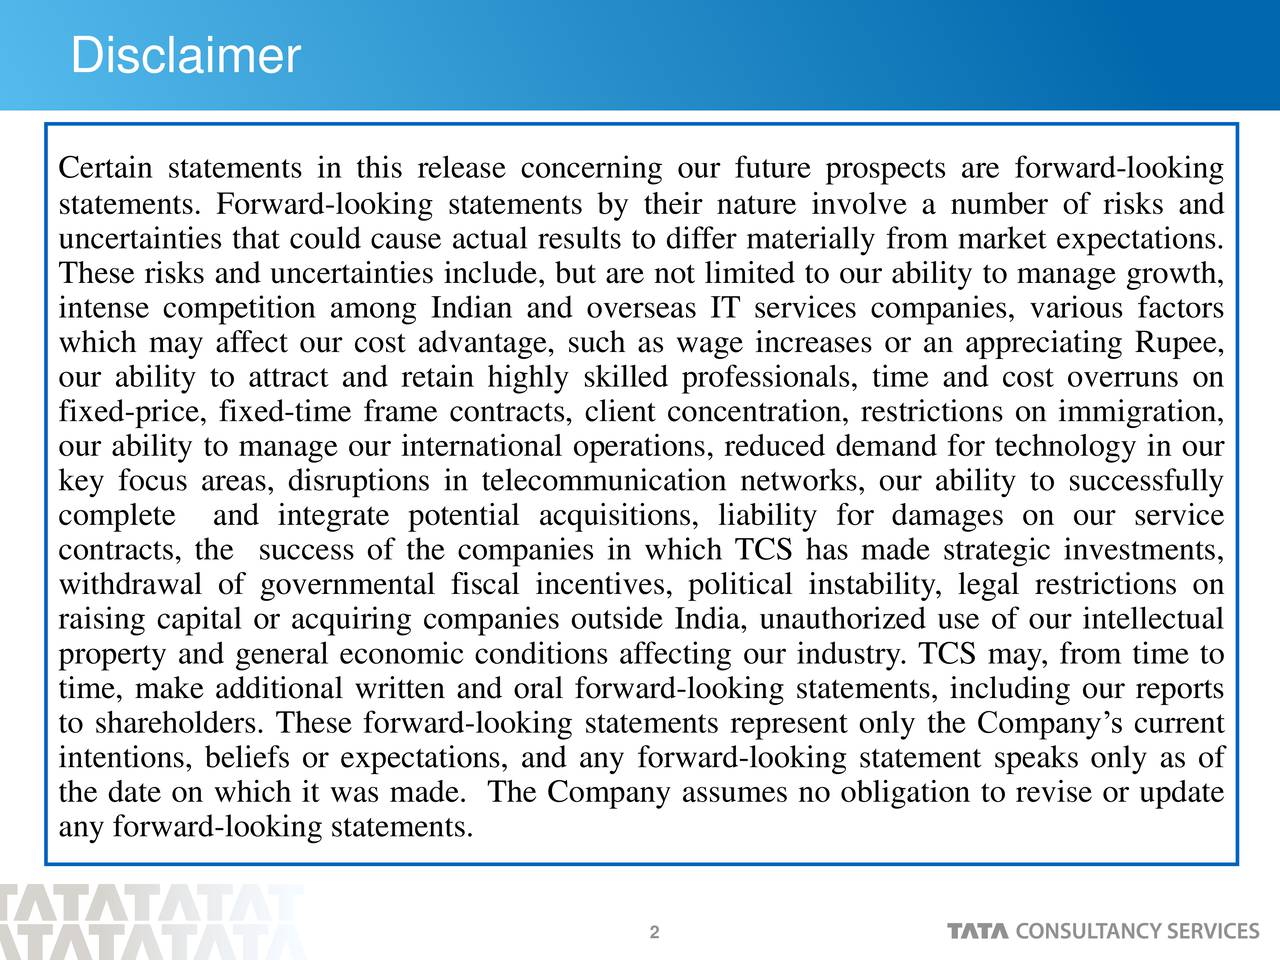 Certain statements in this release concerning our future prospects are forward-looking statements. Forward-looking statements by their nature involve a number of risks and uncertainties that could cause actual results to differ materially from market expectations. These risks and uncertainties include, but are not limited to our ability to manage growth, intense competition among Indian and overseas IT services companies, various factors which may affect our cost advantage, such as wage increases or an appreciating Rupee, our ability to attract and retain highly skilled professionals, time and cost overruns on fixed-price, fixed-time frame contracts, client concentration, restrictions on immigration, our ability to manage our international operations, reduced demand for technology in our key focus areas, disruptions in telecommunication networks, our ability to successfully complete and integrate potential acquisitions, liability for damages on our service contracts, the success of the companies in which TCS has made strategic investments, withdrawal of governmental fiscal incentives, political instability, legal restrictions on raising capital or acquiring companies outside India, unauthorized use of our intellectual property and general economic conditions affecting our industry. TCS may, from time to time, make additional written and oral forward-looking statements, including our reports to shareholders. These forward-looking statements represent only the Companys current intentions, beliefs or expectations, and any forward-looking statement speaks only as of the date on which it was made. The Company assumes no obligation to revise or update any forward-looking statements. 2